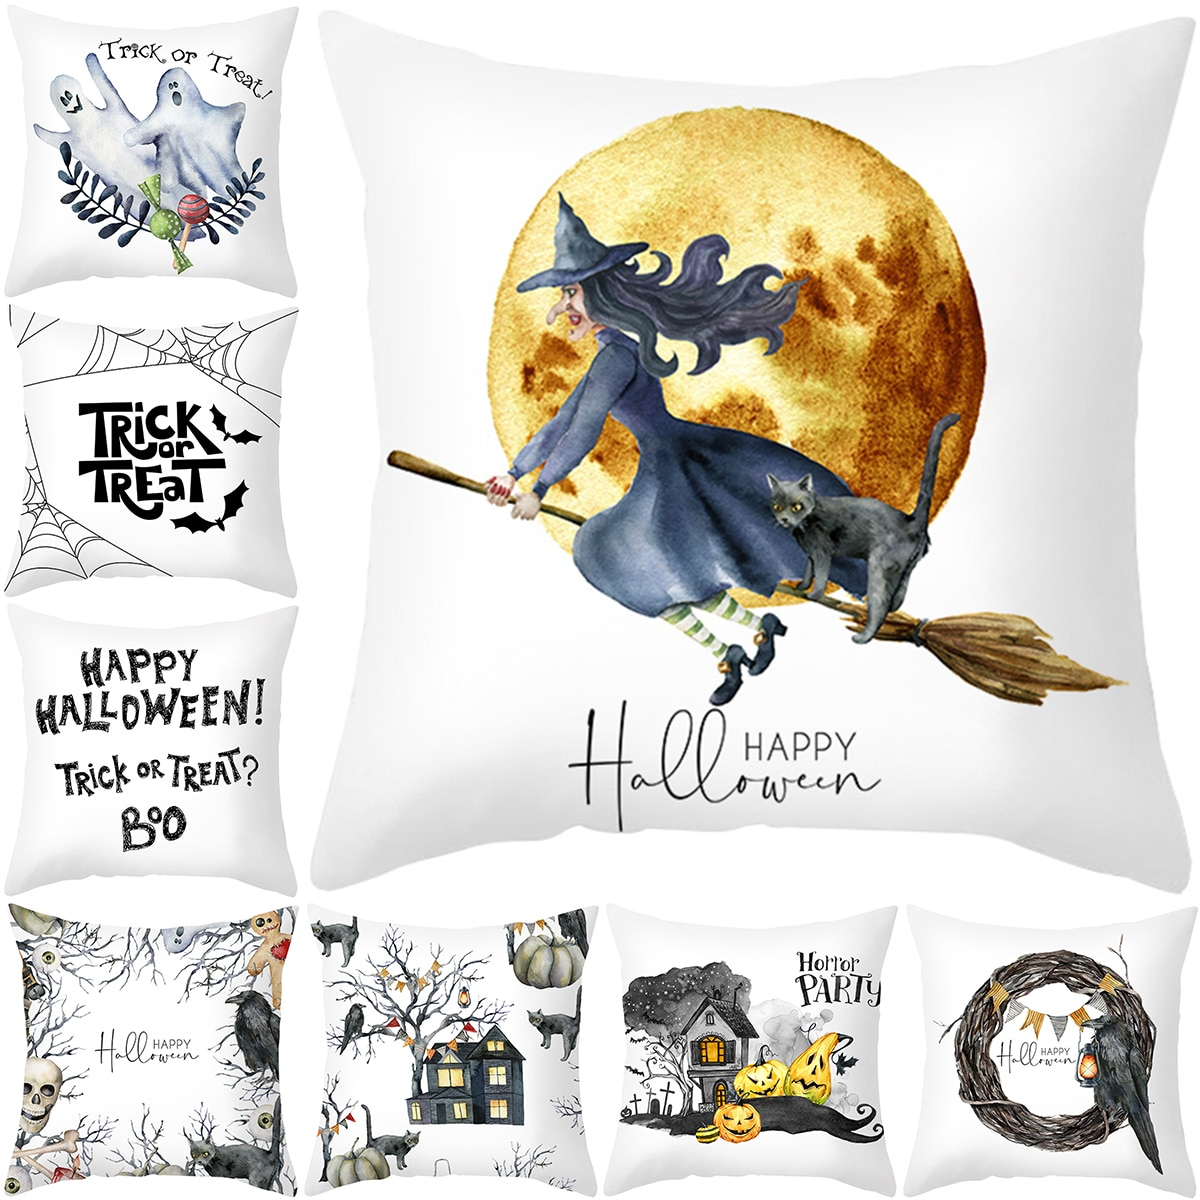 Zerolife Halloween Decoration For Home Cartoon Pumpkin Bat Ghost Pillowcase Horror Halloween Party Supplies Accessories Ornament halloween cartoon doll pumpkin witch cat party ideal decoration for club bar shop home showcase bar table shelf holiday decor